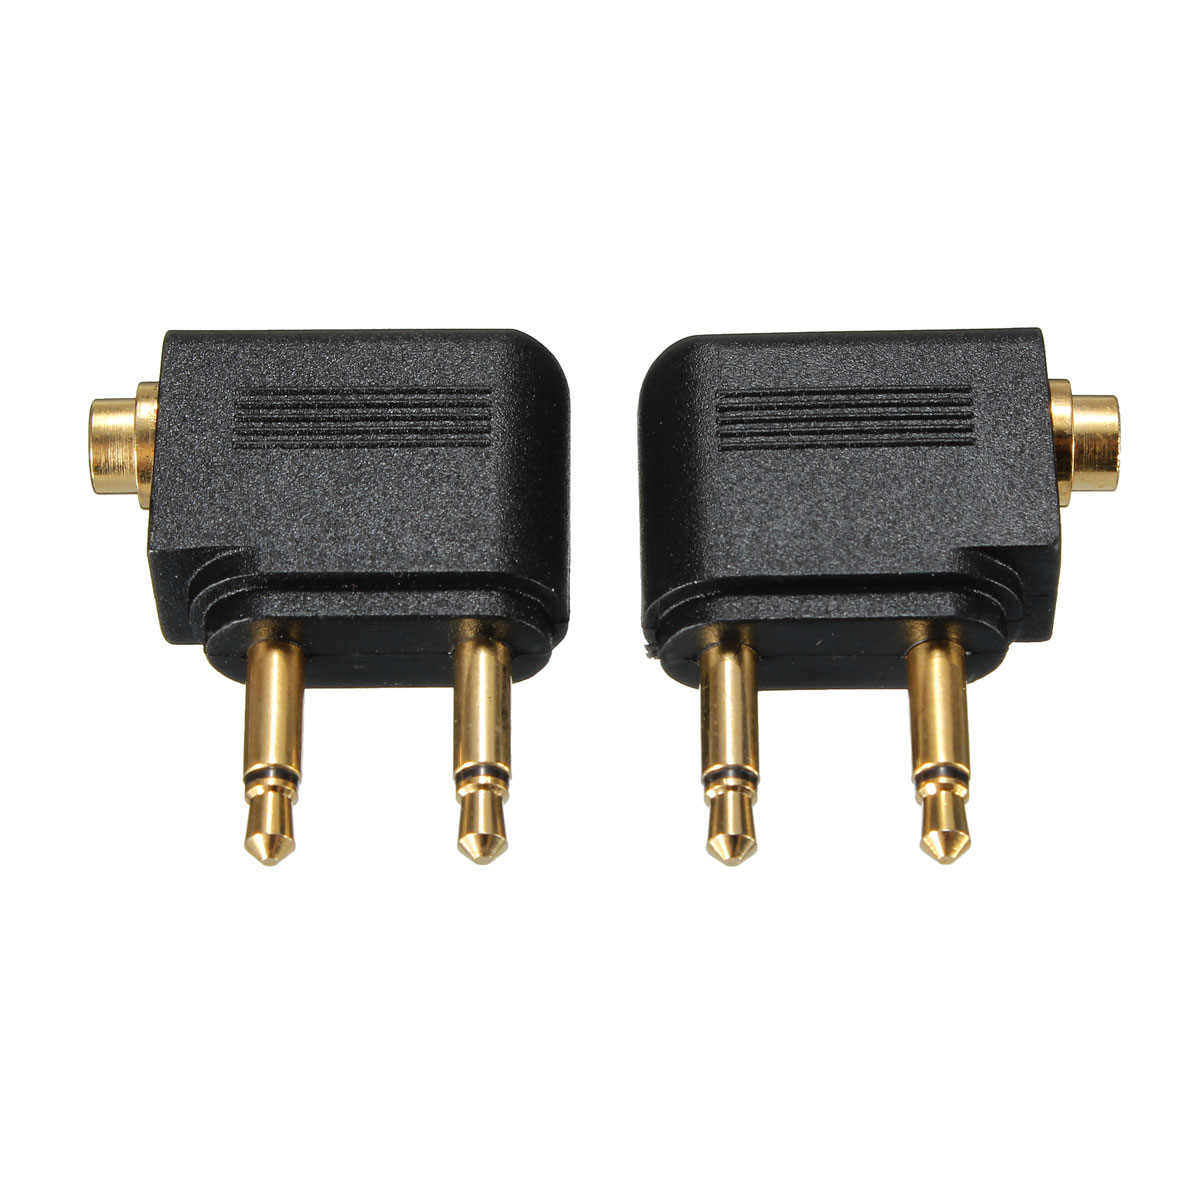 3.5mm Airline Airplane Adapter To Dual Prong Stereo for Jack 3.5mm to 2 x 3.5 mm Stereo Ear Headset Headphone Audio